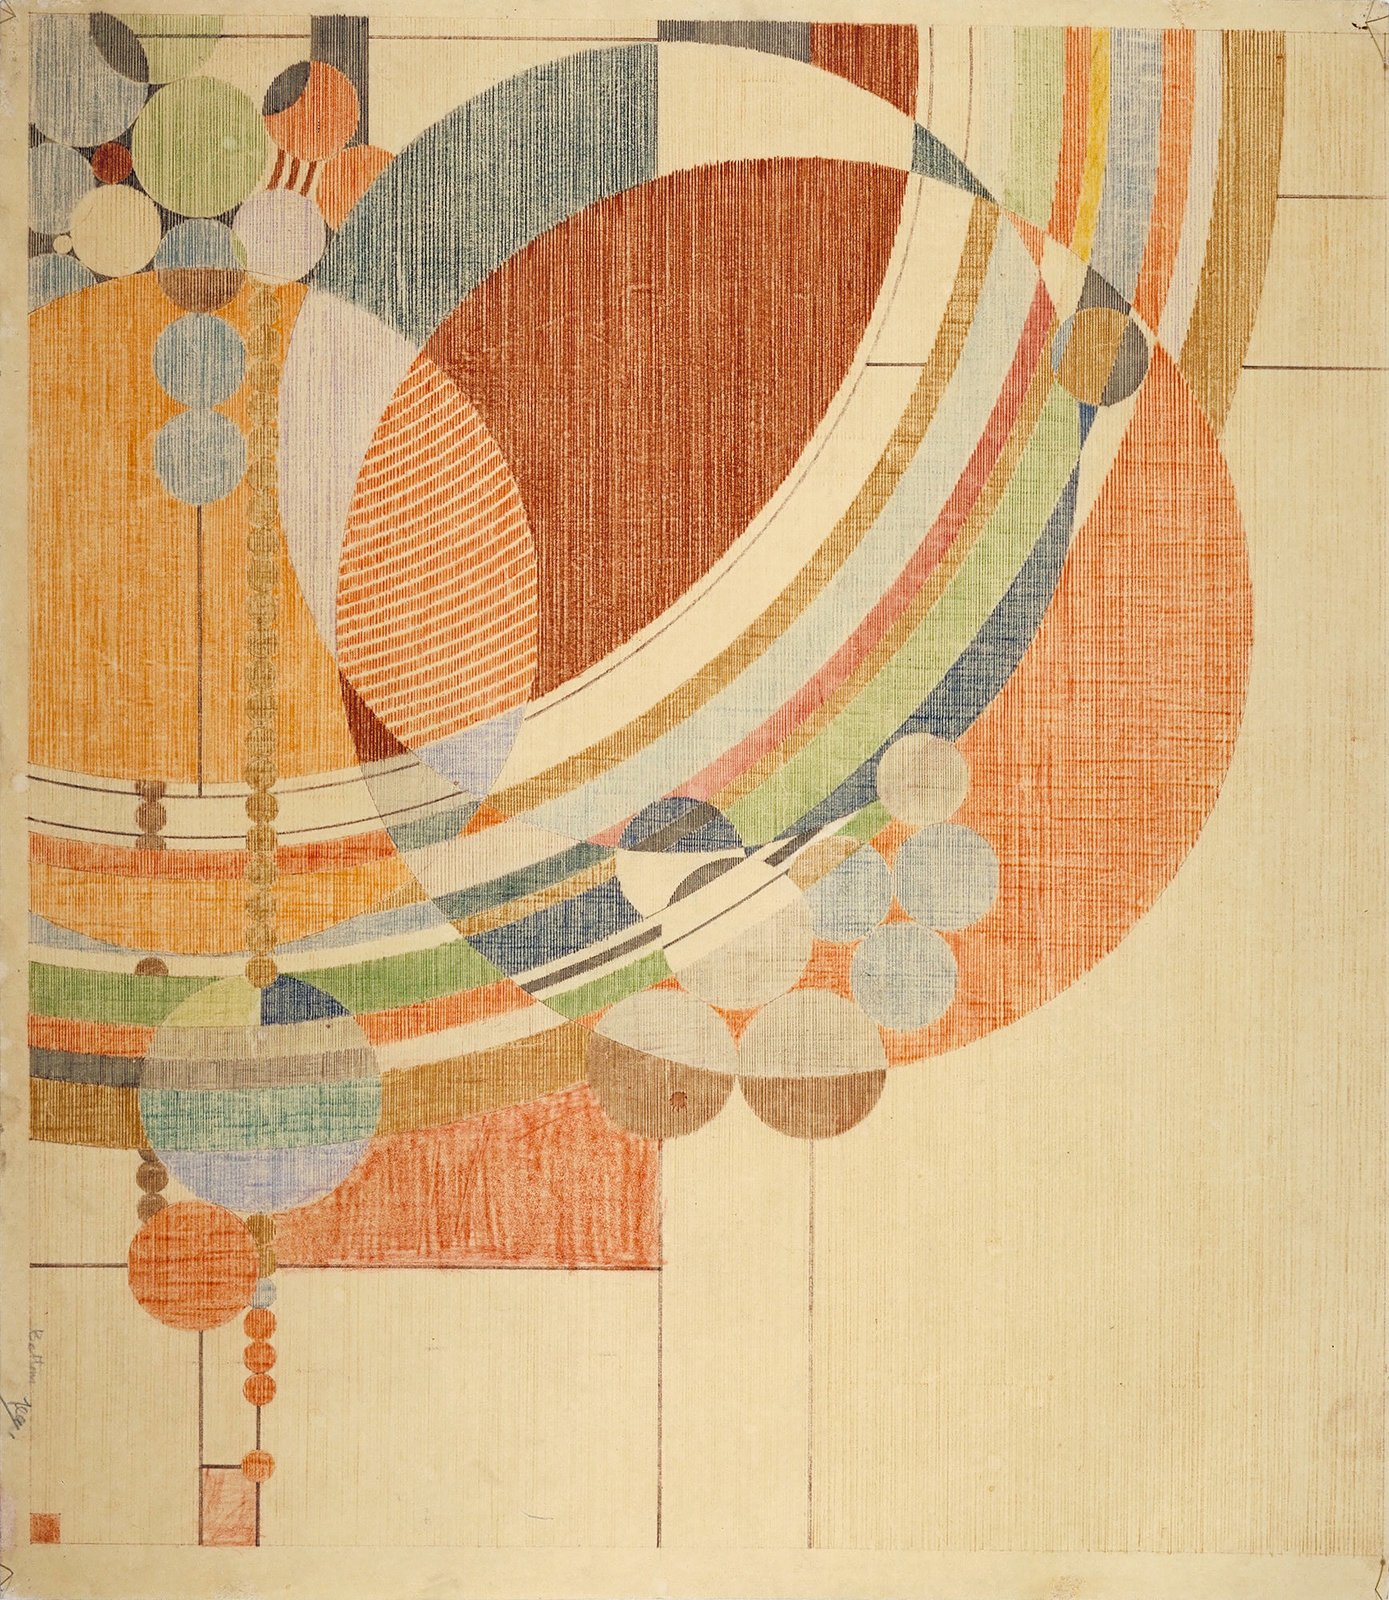 Frank Lloyd Wright. March Balloons. 1955. Drawing based on a c. 1926 design for Liberty magazine. Colored pencil on paper, 28 1/4 x 24 1/2  Photo 3 of 12 in 10 Ways to Celebrate Frank Lloyd Wright's 150th Birthday